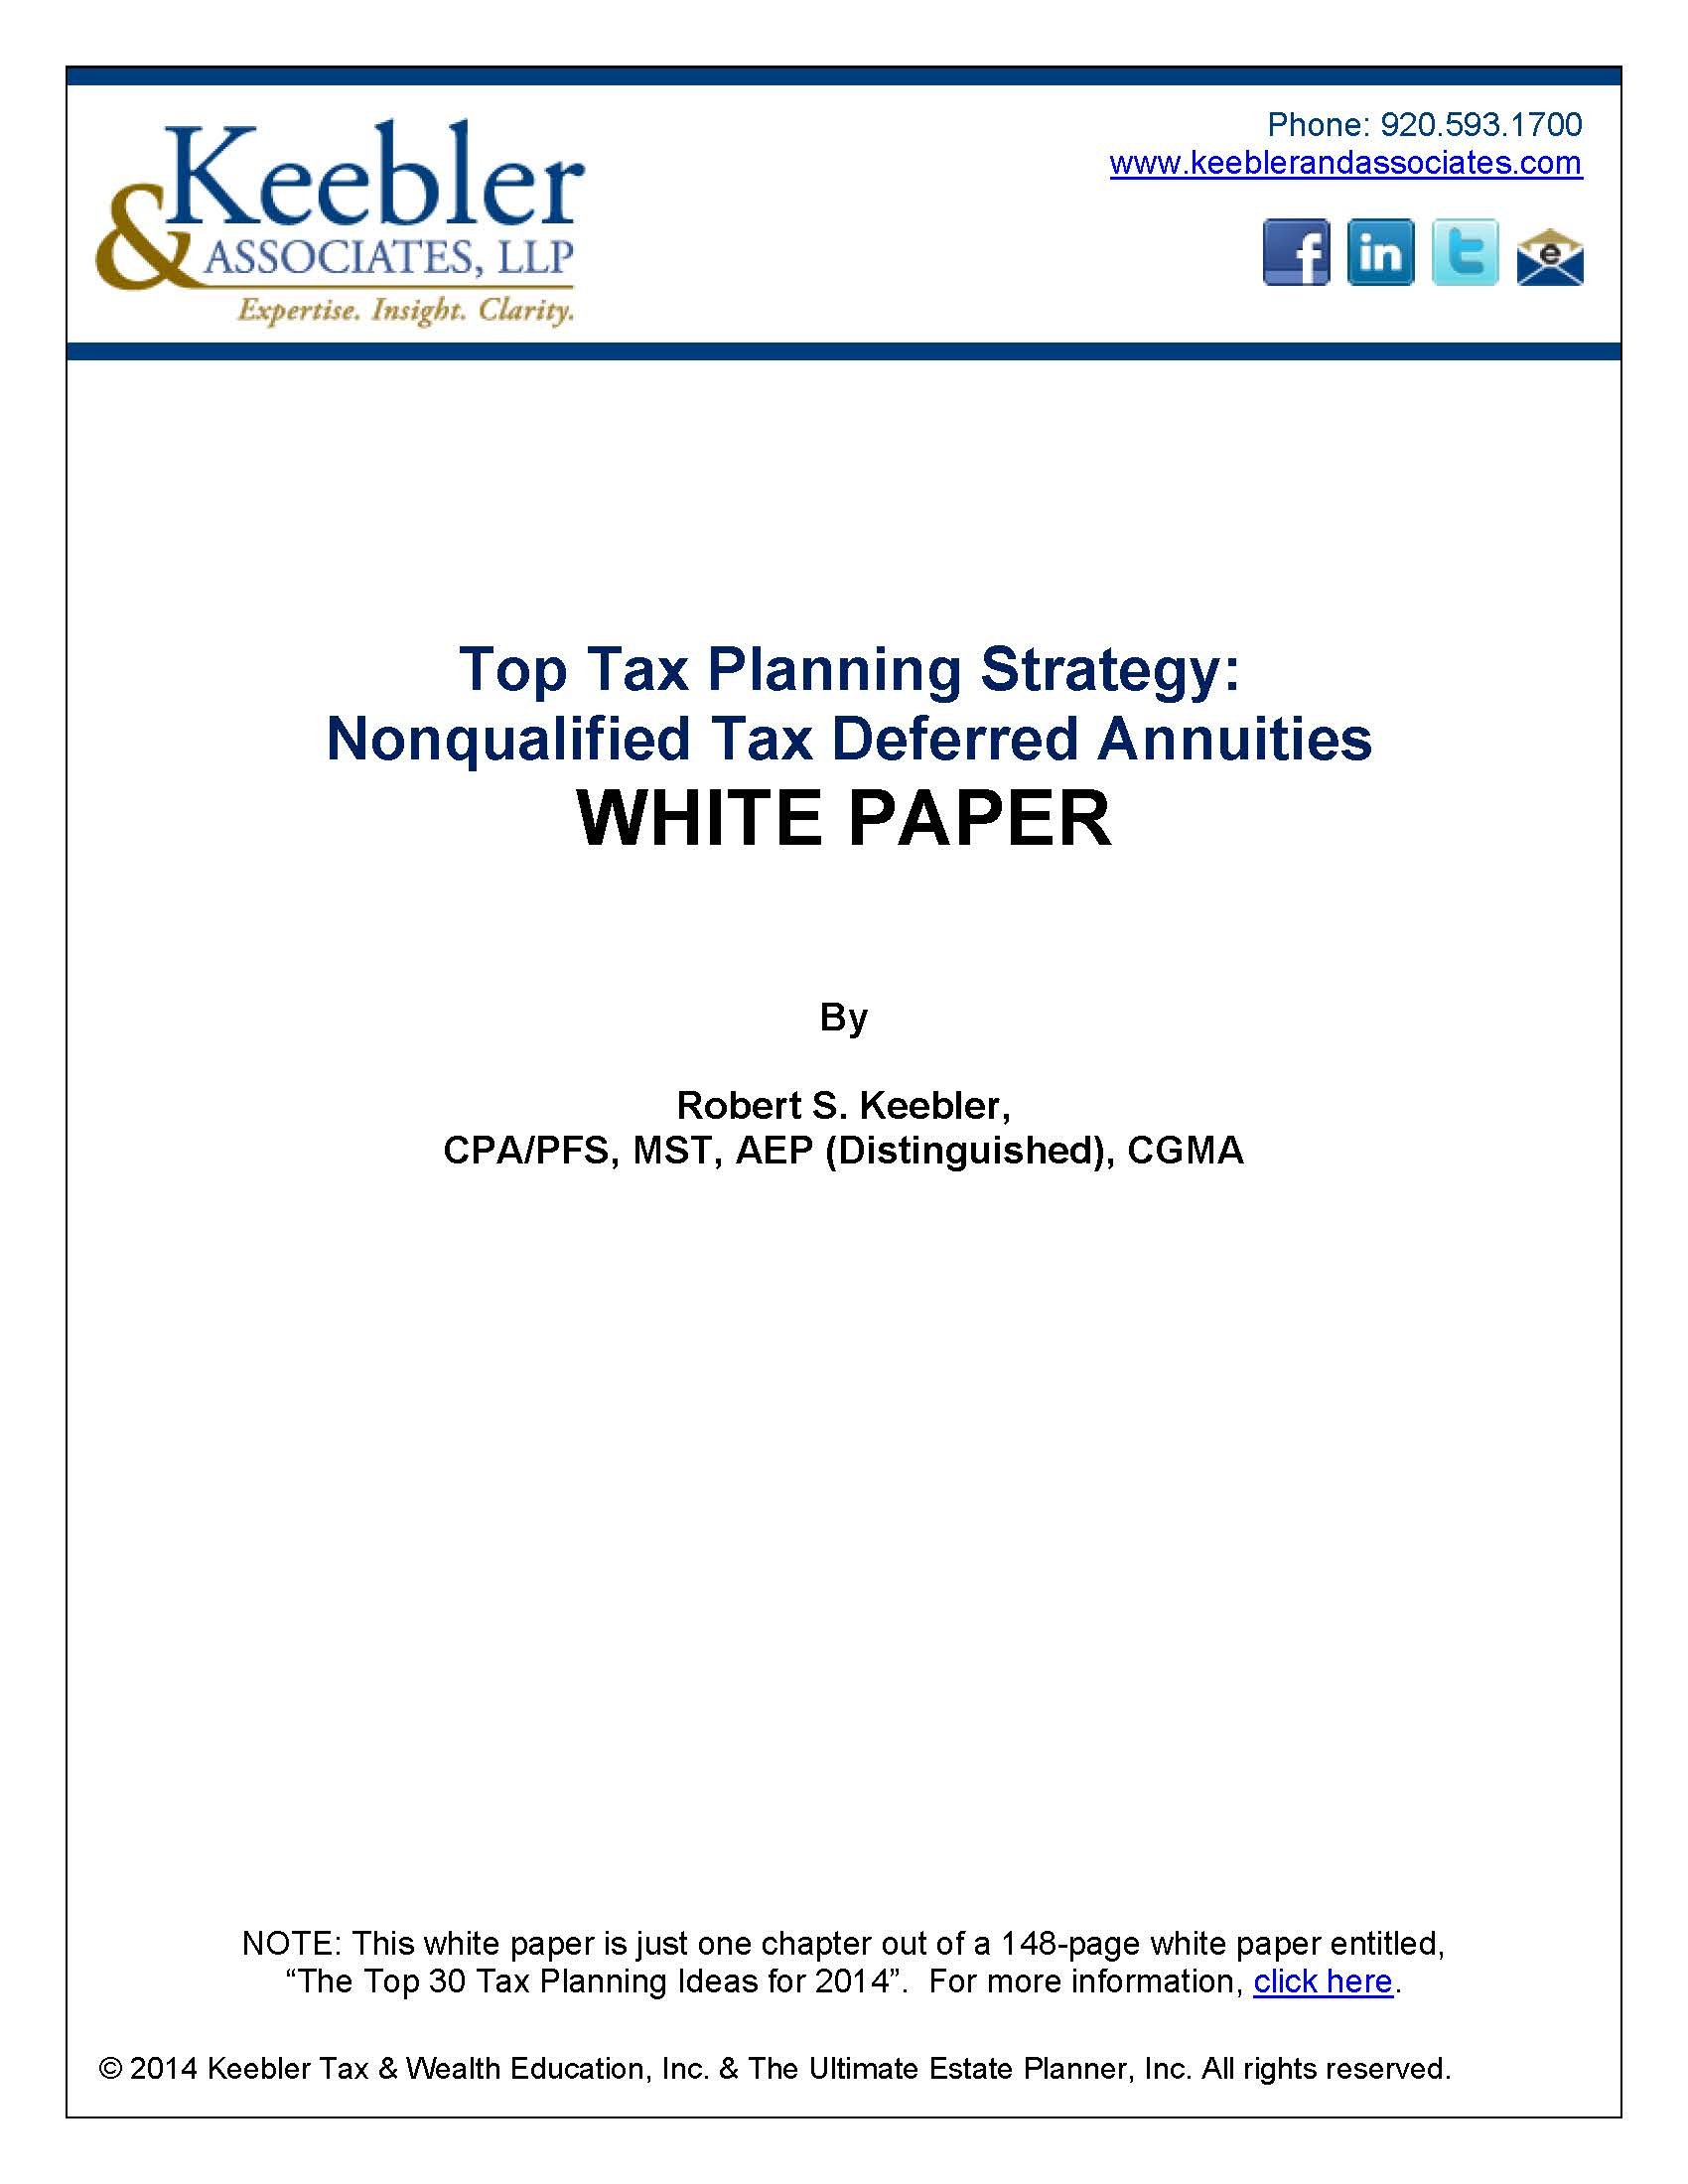 WP-NonqualTaxAnnuitiesCover